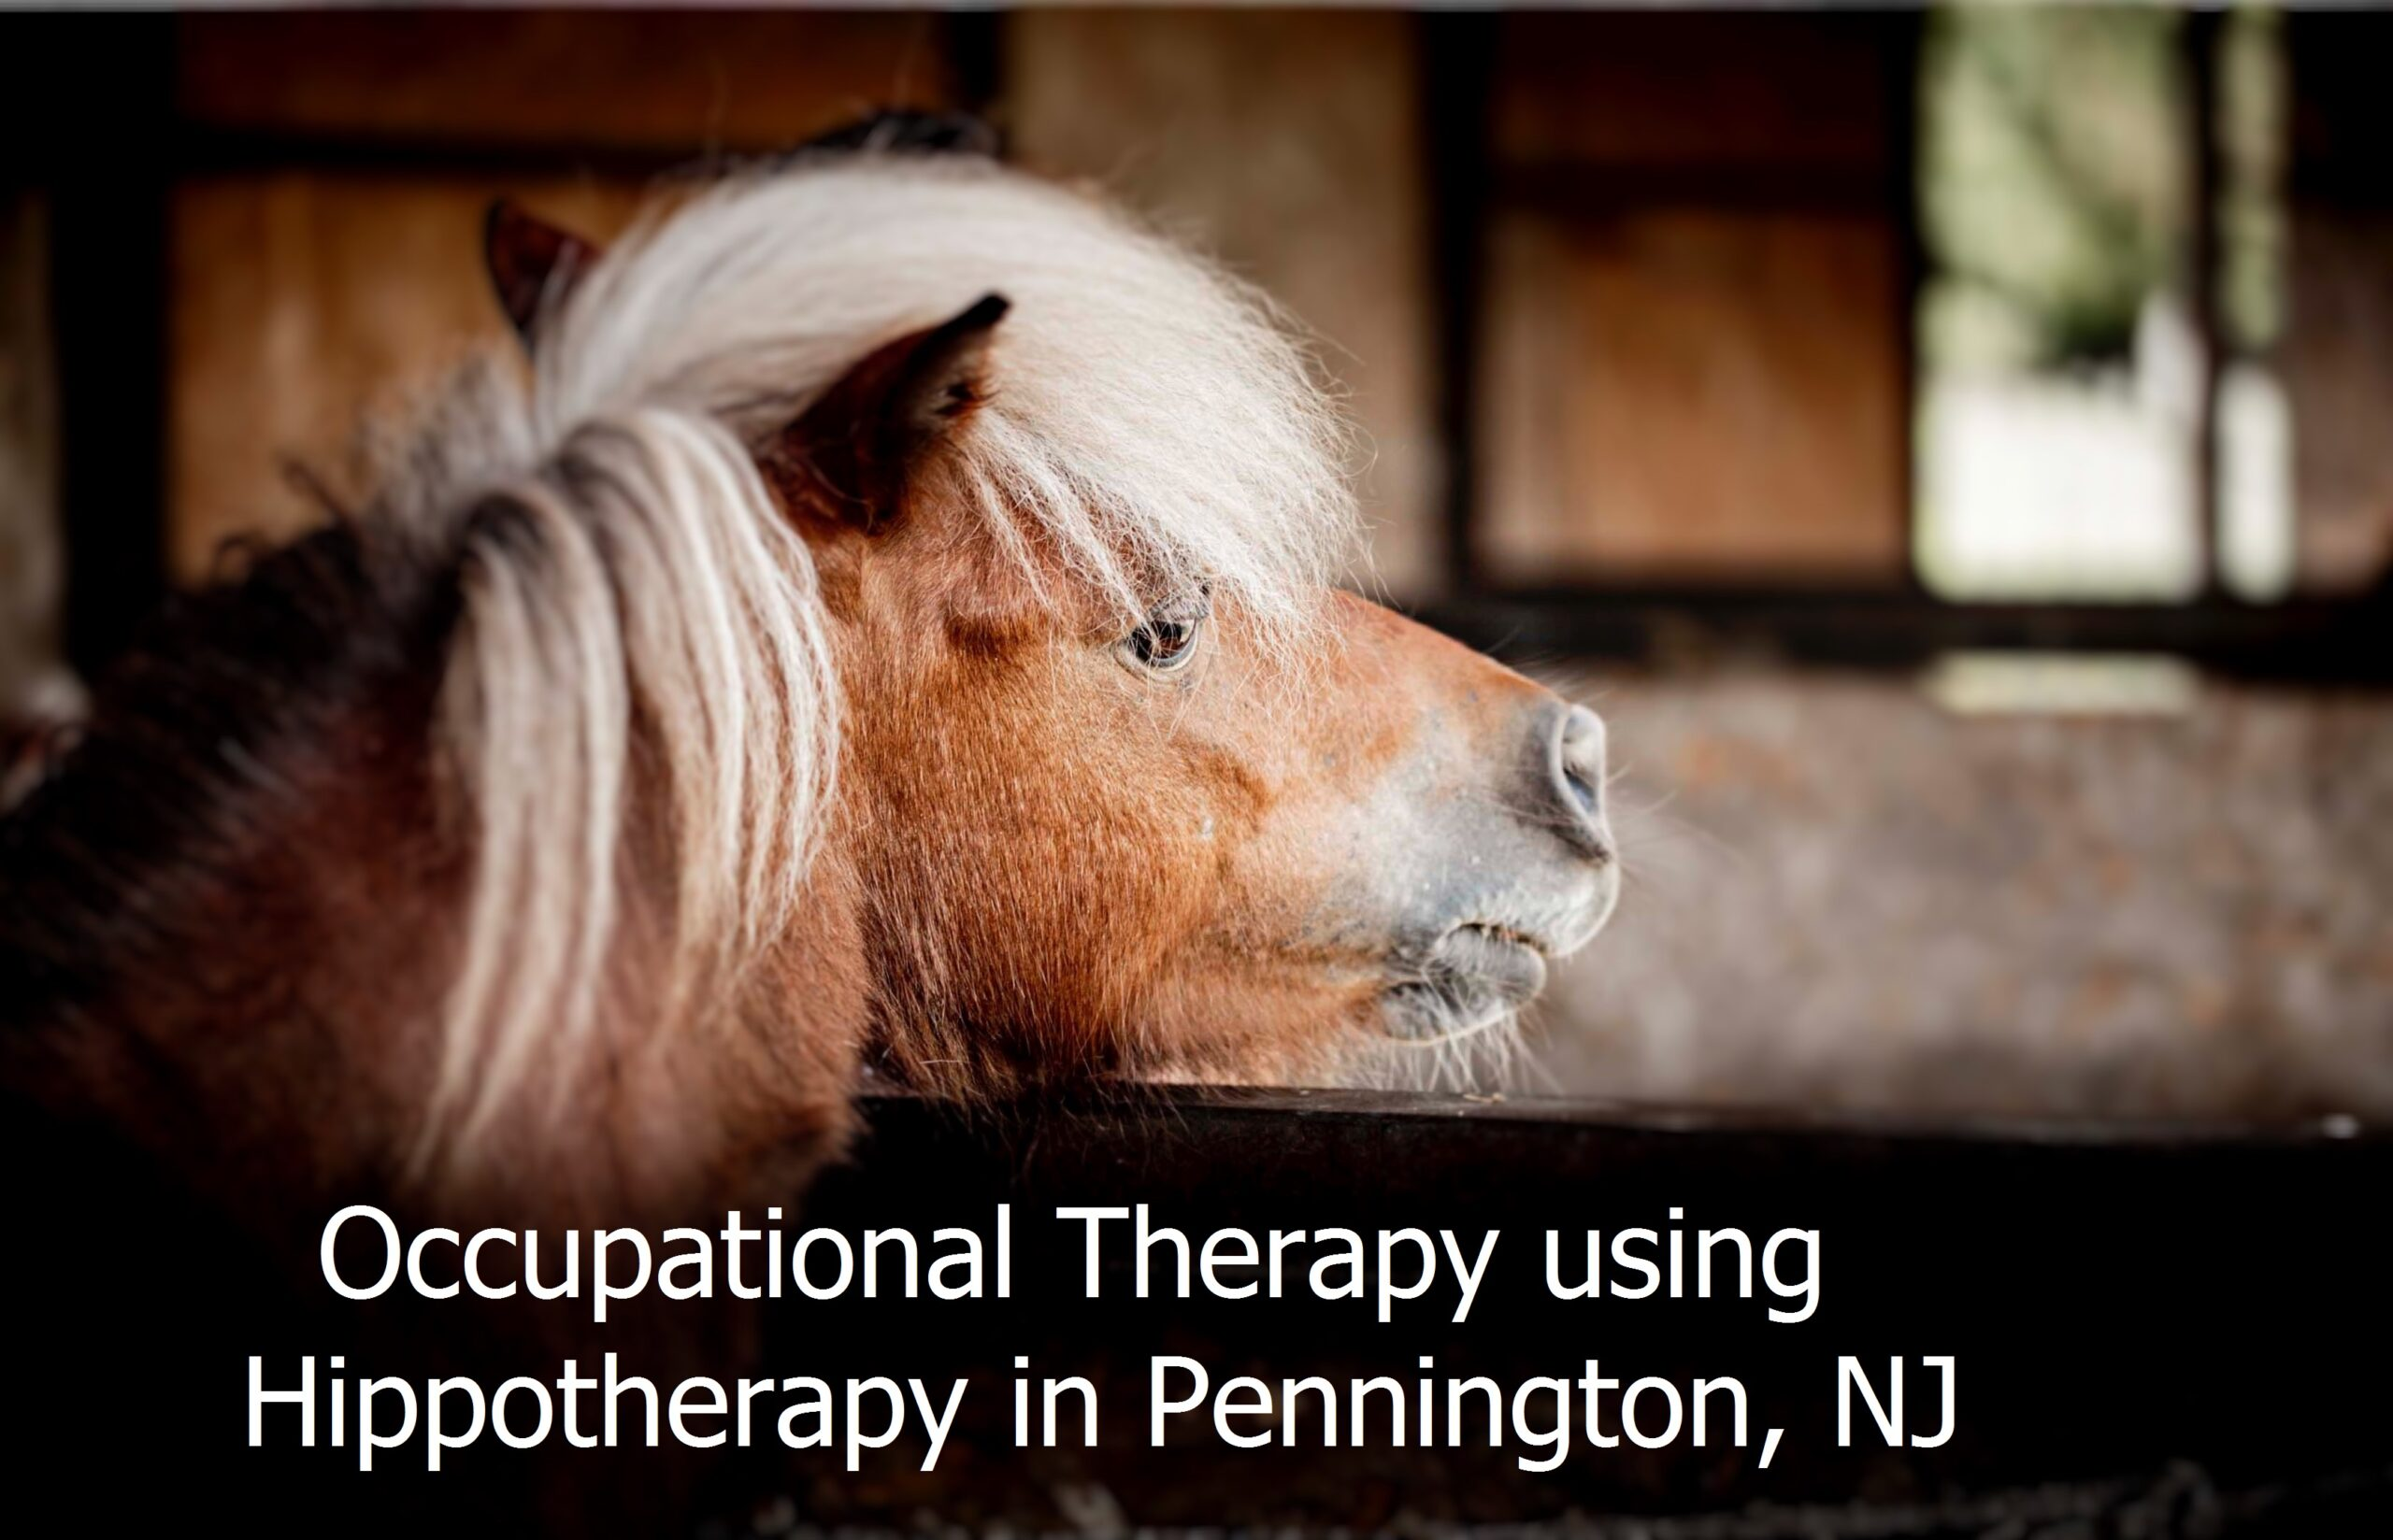 Occupational Therapy using HIppotherapy in Pennington NJ.